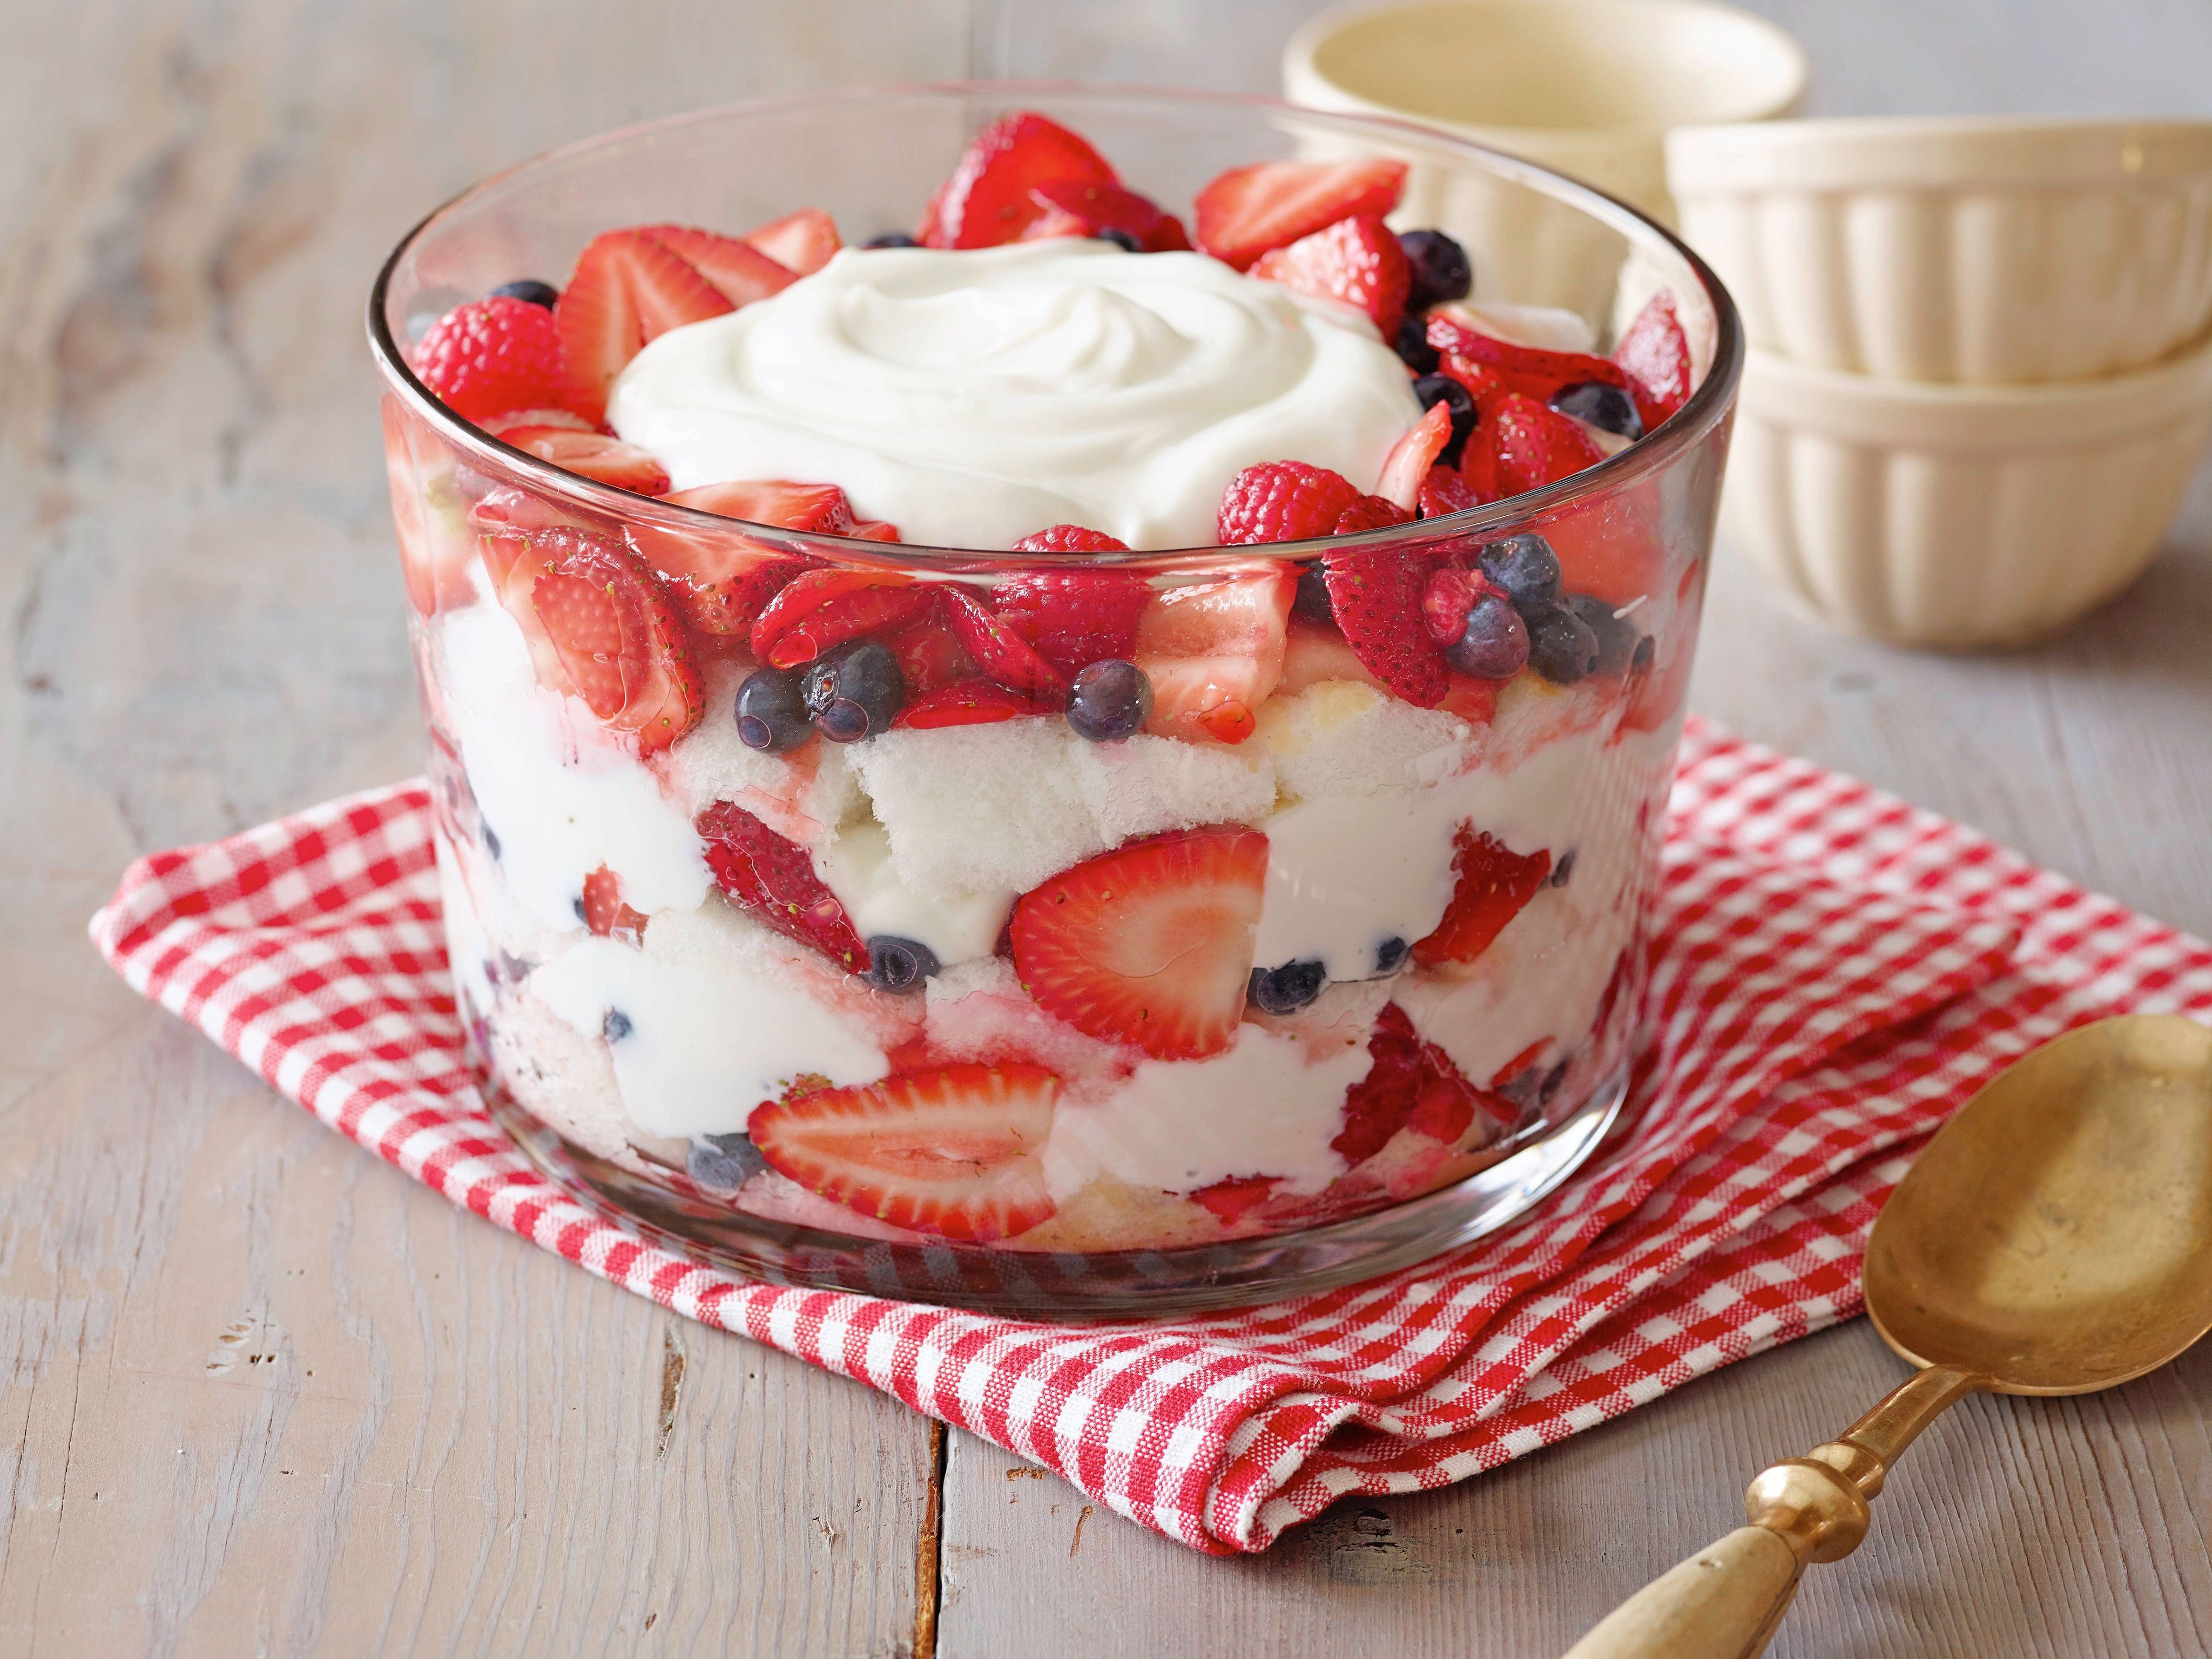 Angel Food Cake Desserts Recipes  Angel Food Cake and Berry Trifle Recipe